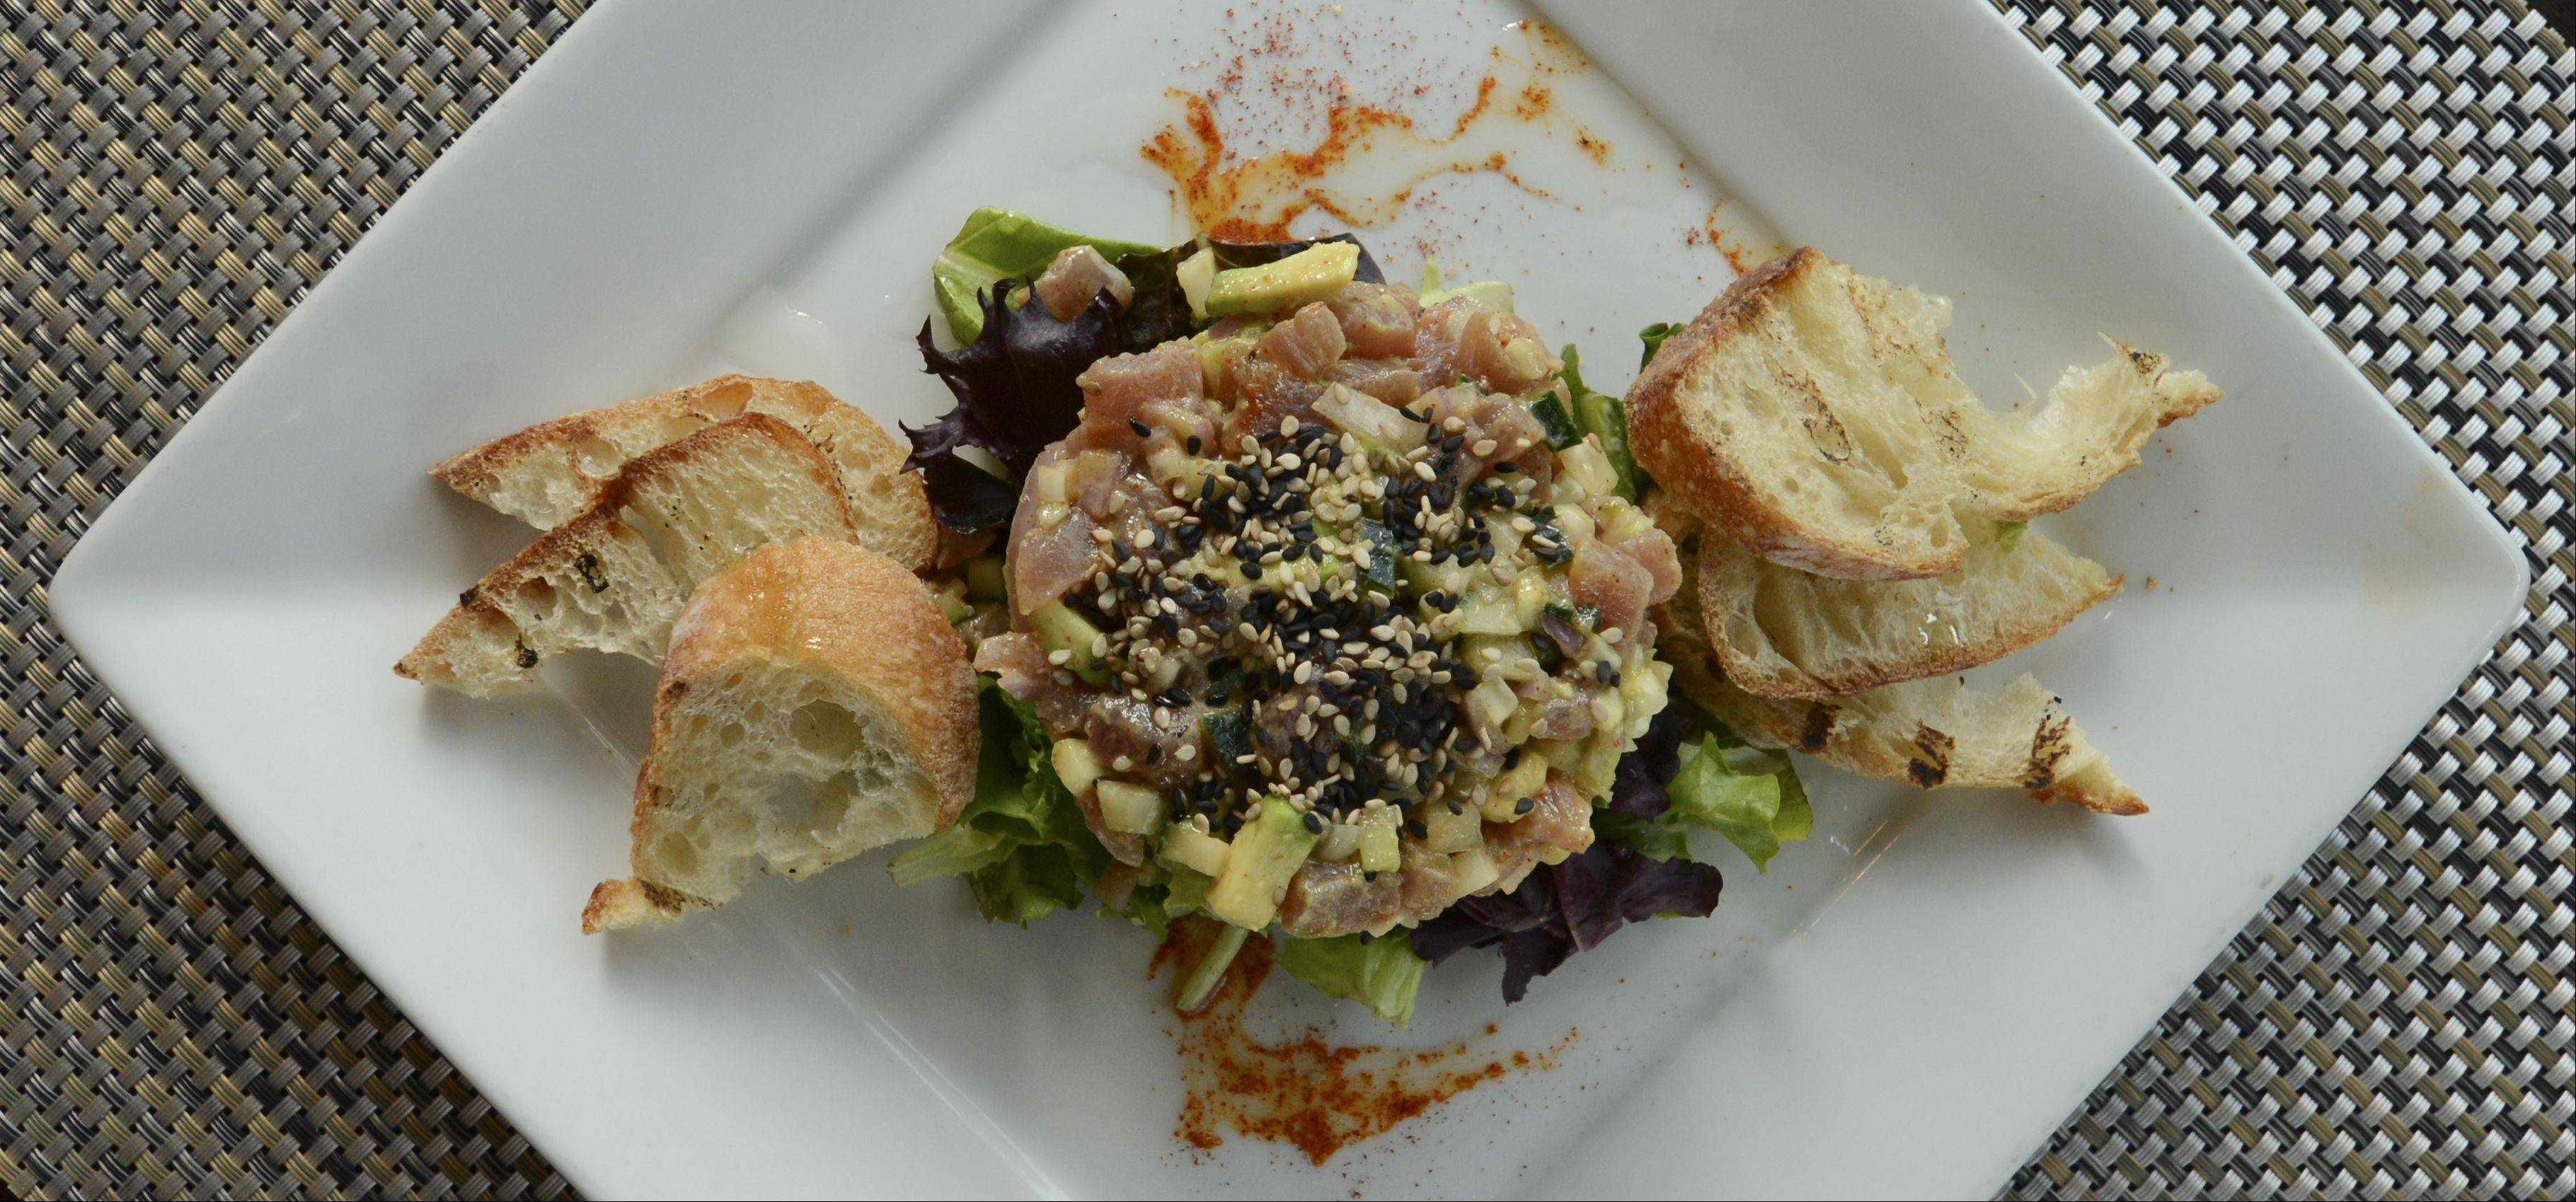 Tuna tartar is a nice way to start a meal at Paris Bistro in Naperville.